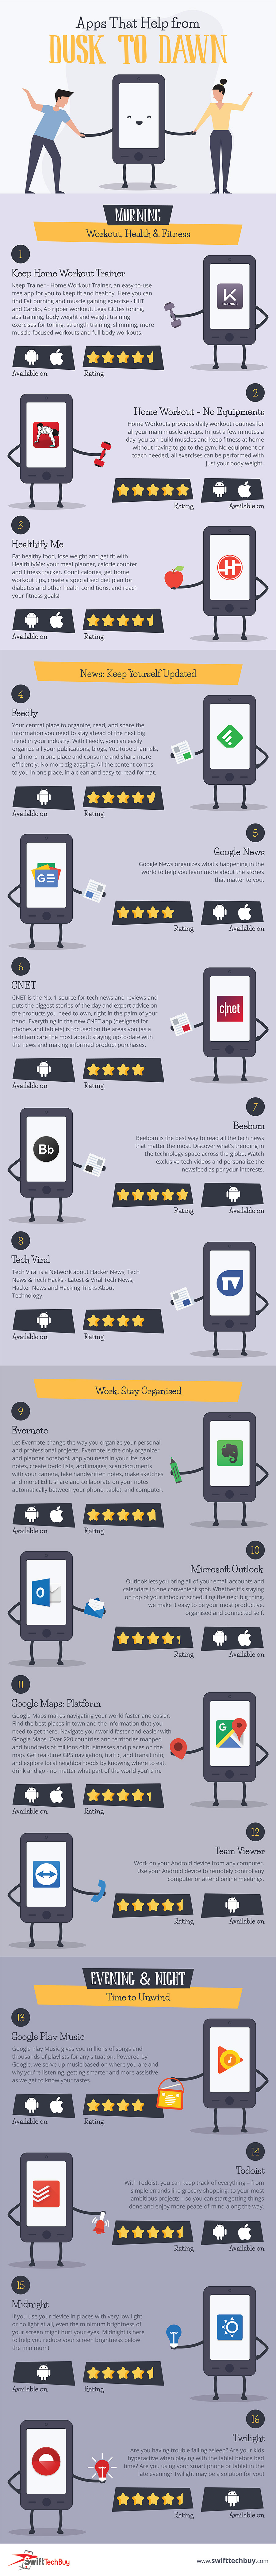 Apps that Help from Dusk to Dawn - Infographic